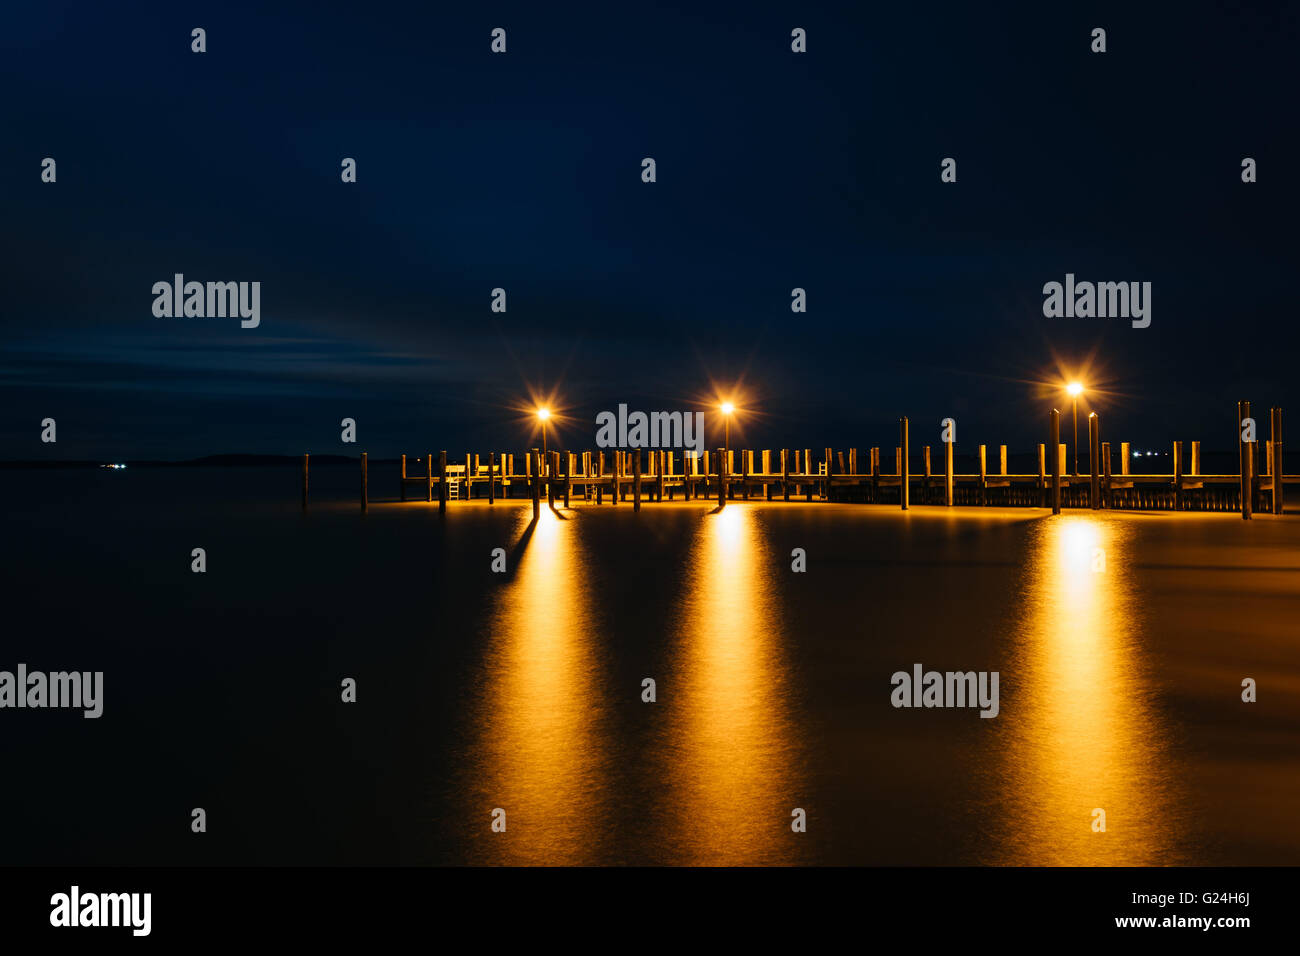 Pier on the Chesapeake Bay at night, in Havre de Grace, Maryland. - Stock Image